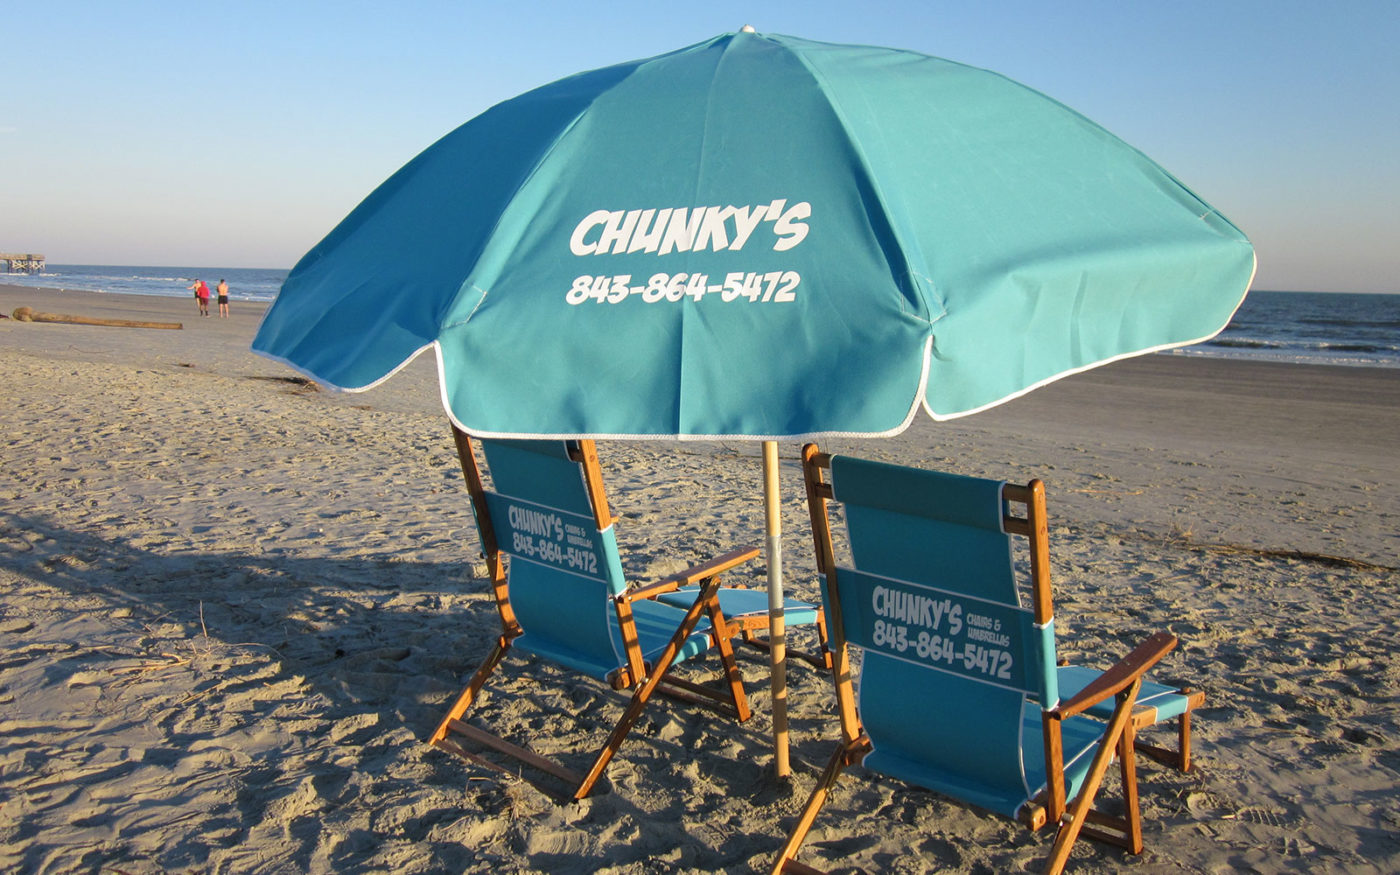 beach chair rental isle of palms bathroom vanity stools chairs chunky s and umbrellas umbrella rentals previousnext